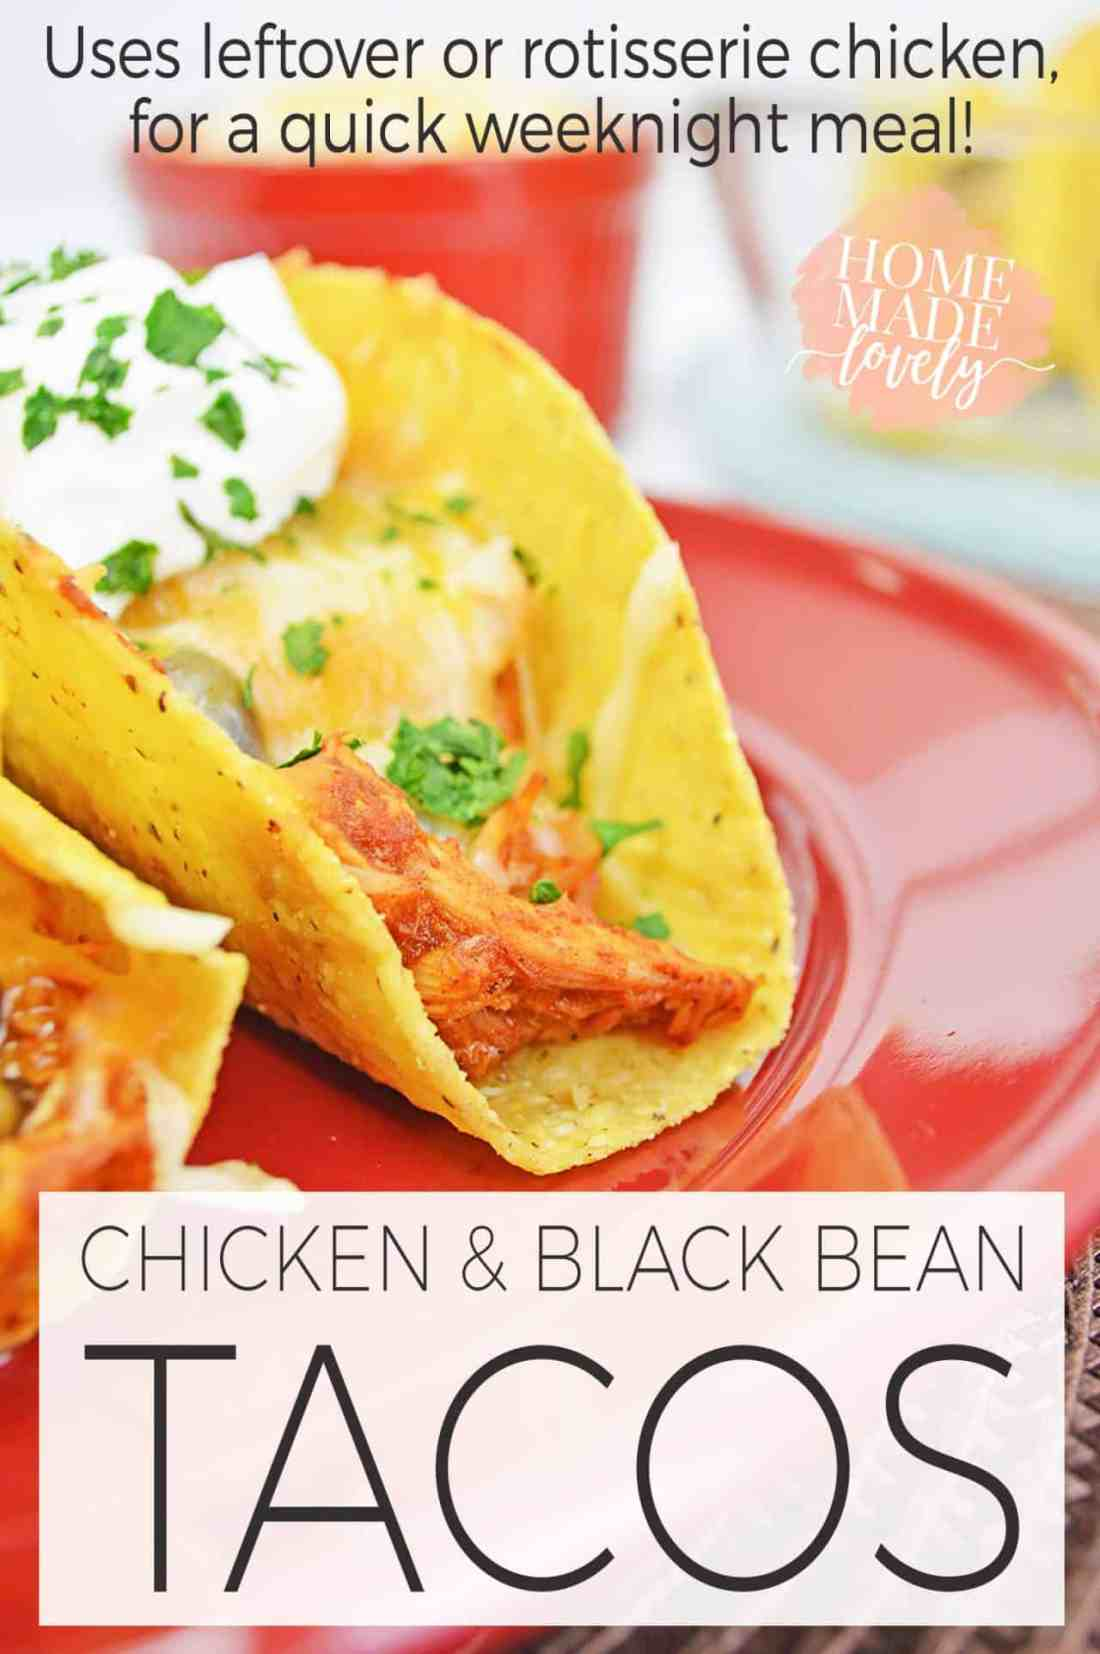 Need a quick weeknight meal? Make these chicken and black bean tacos with leftover or rotisserie chicken and canned black beans. Easy and delicious!